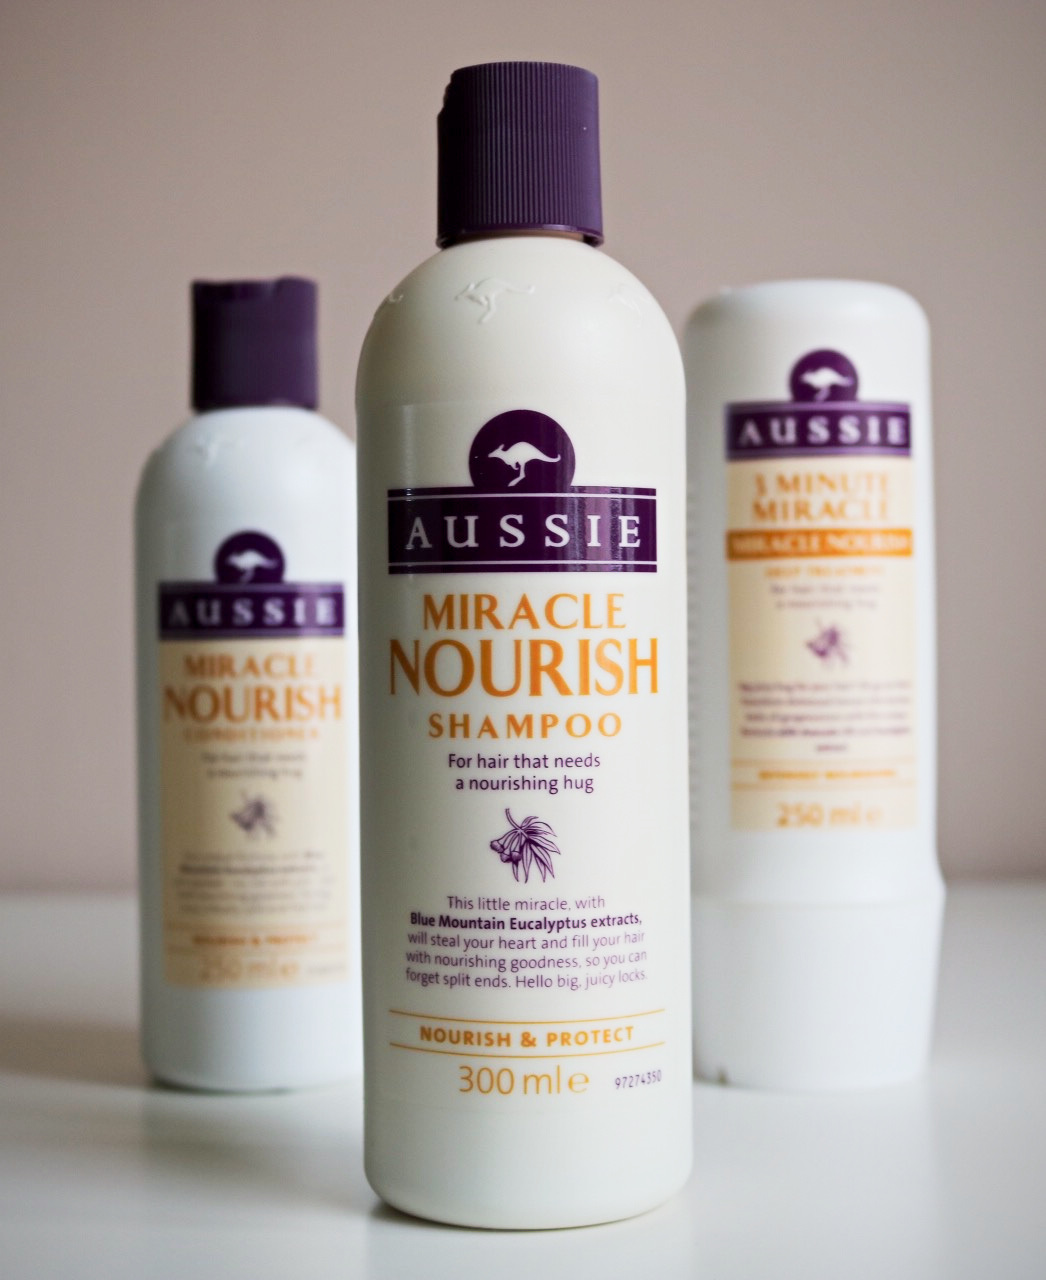 Aussie Miracle Nourish Collection I Am Fabulicious Gieve Eucalyptus Hair Conditioner Designed To Give Limp And Lacklustre Locks Some Serious Nourishment The Range Infuses Moisture Restore Shine Leave Your Looking Healthy